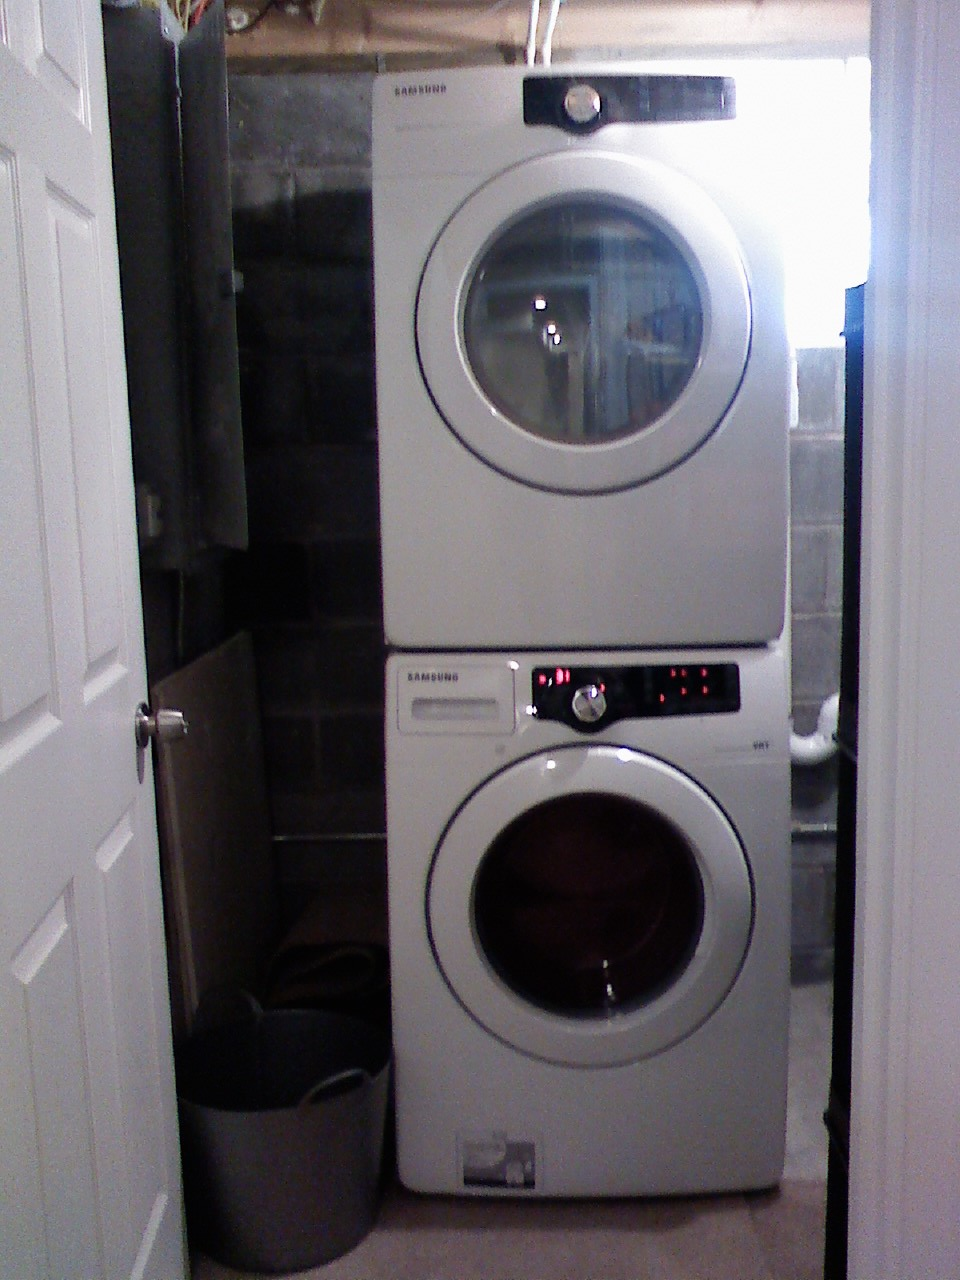 Yay New Washer Dryer Boo No Dryer Outlet This My House